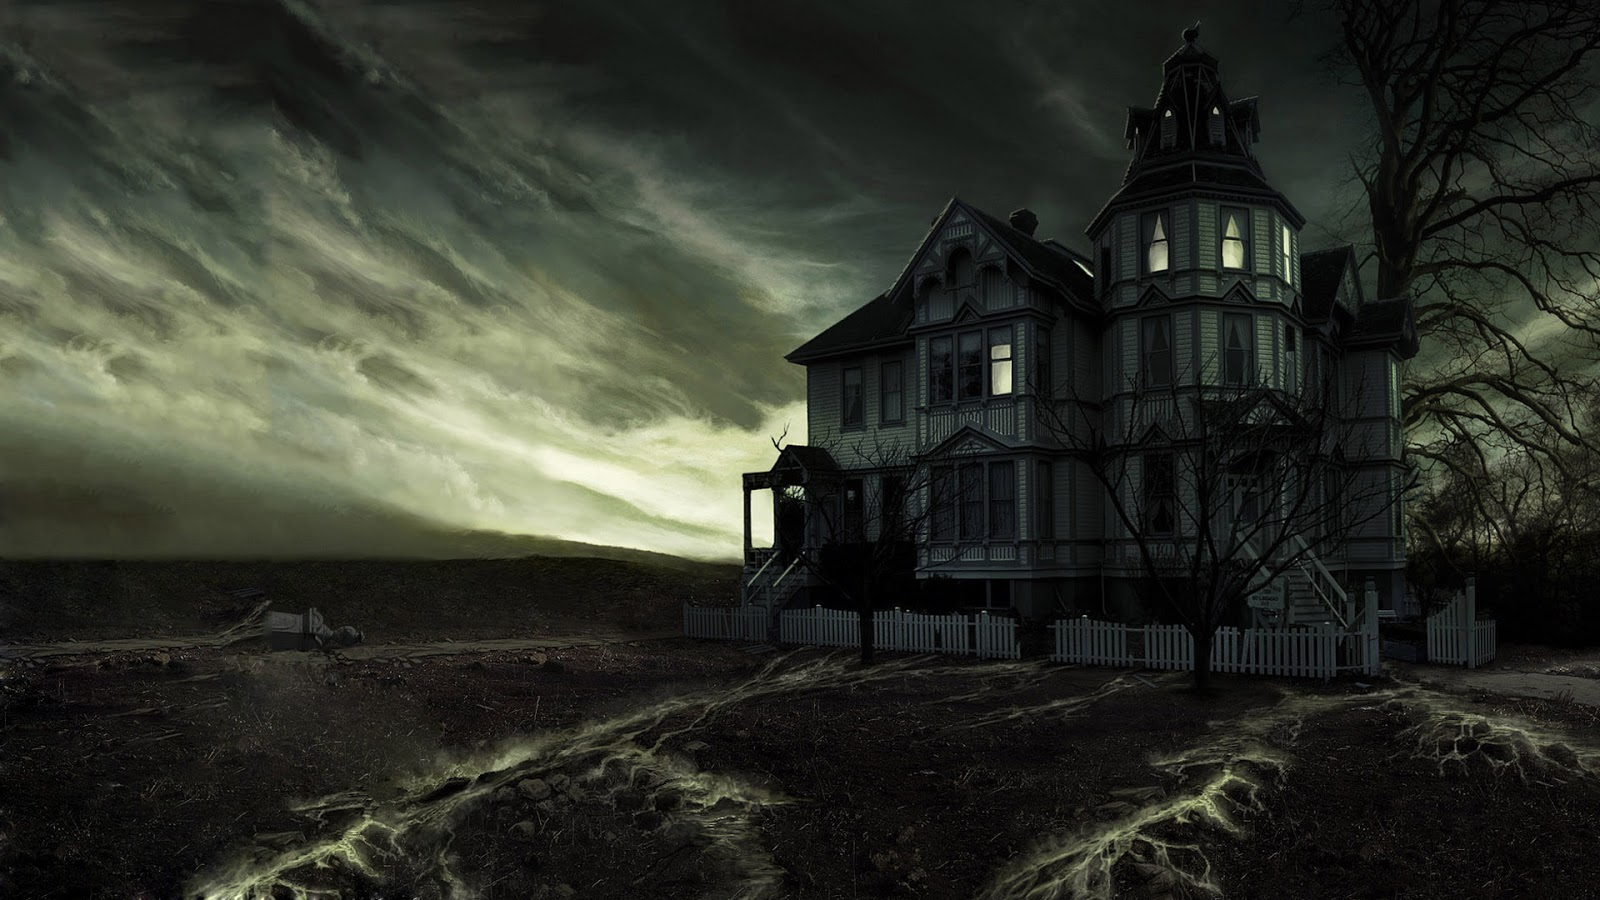 ghost house halloween scary pumpkin halloween scary red house ...